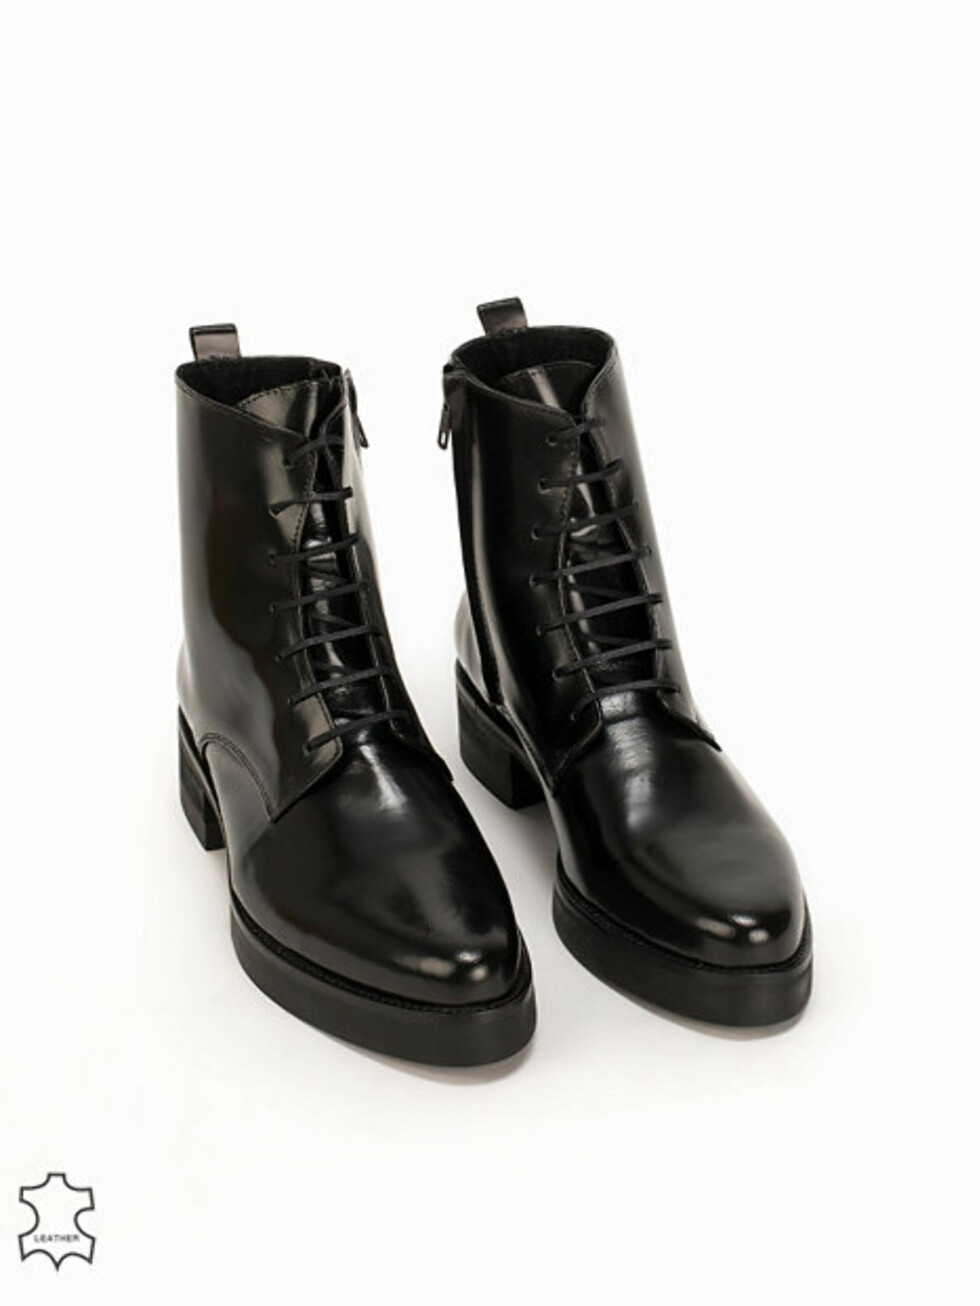 Boots fra Selected Femme via Nelly.com (30 prosent) | kr 906 |  http://my.nelly.com/link/click/18111